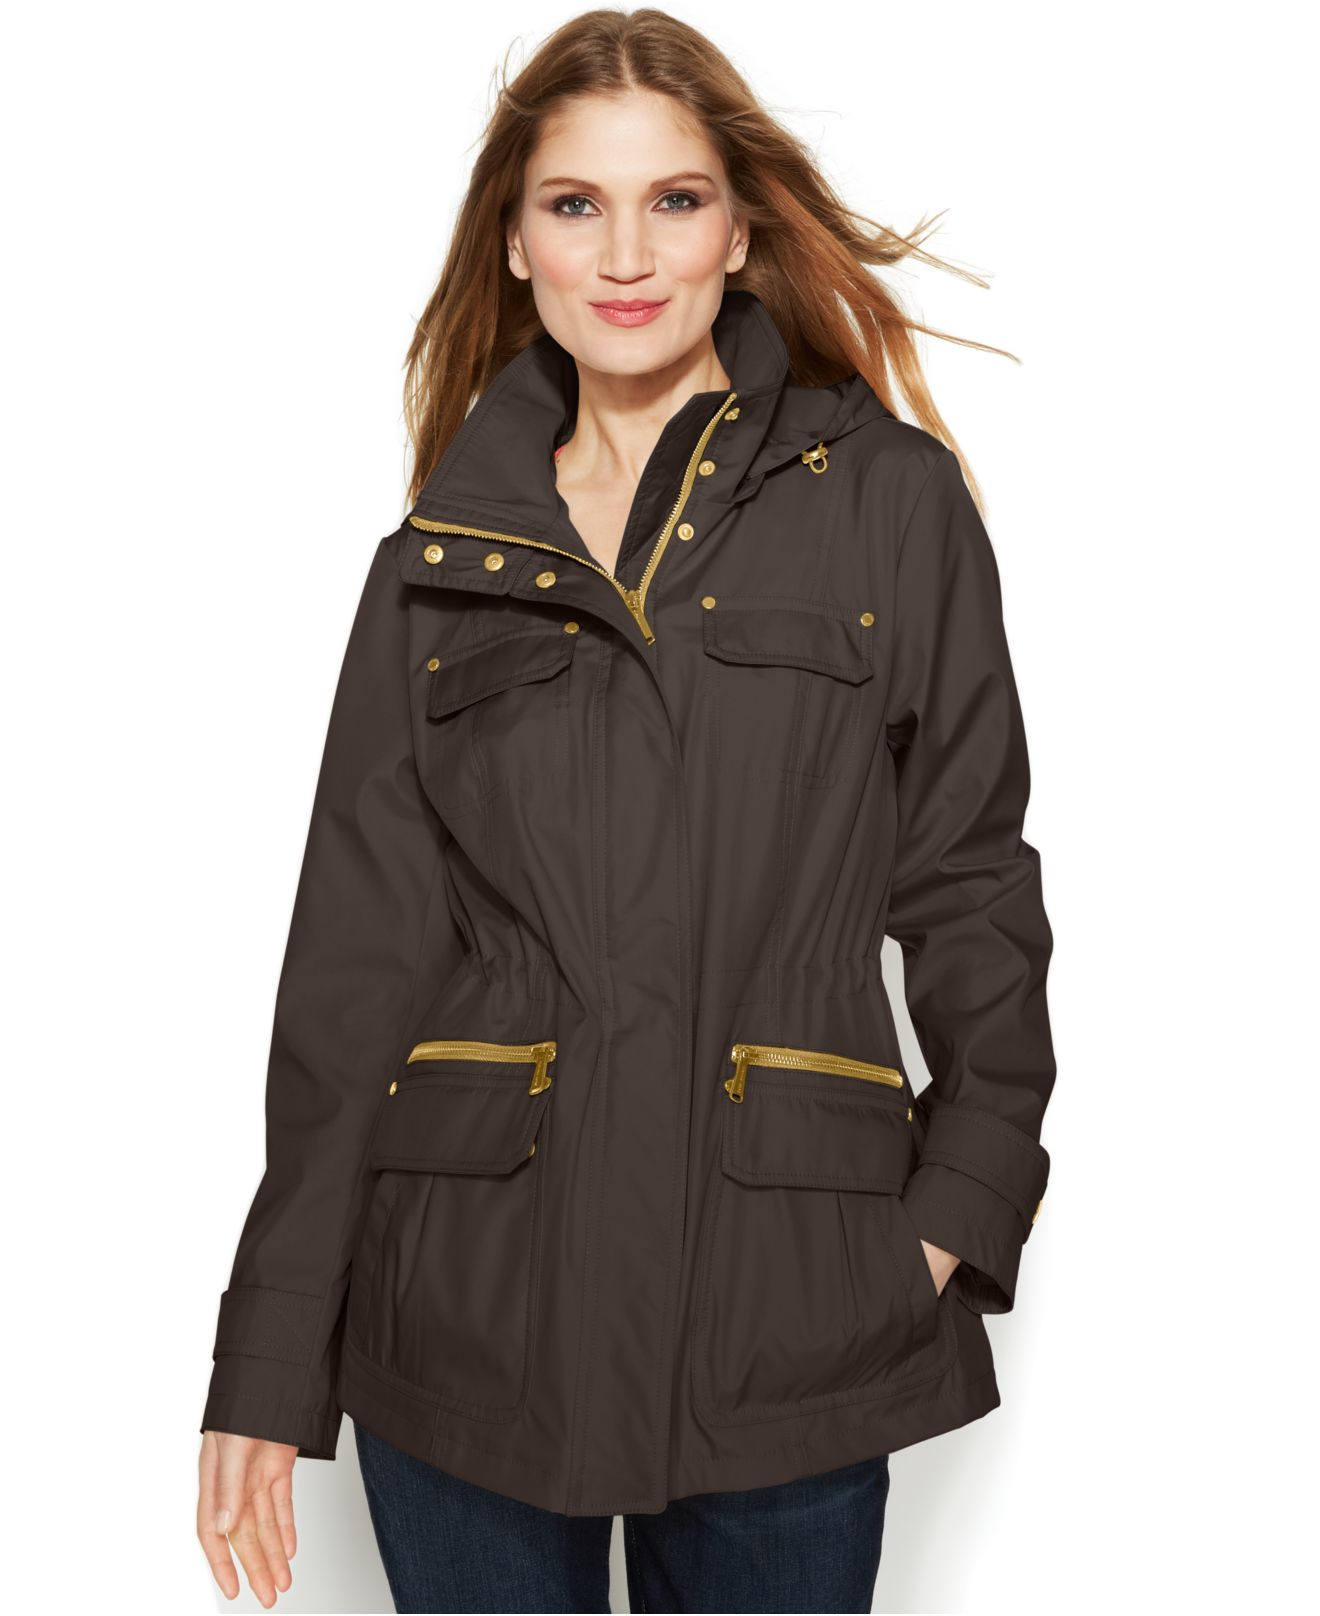 michael kors michael hooded anorak jacket in green lyst. Black Bedroom Furniture Sets. Home Design Ideas